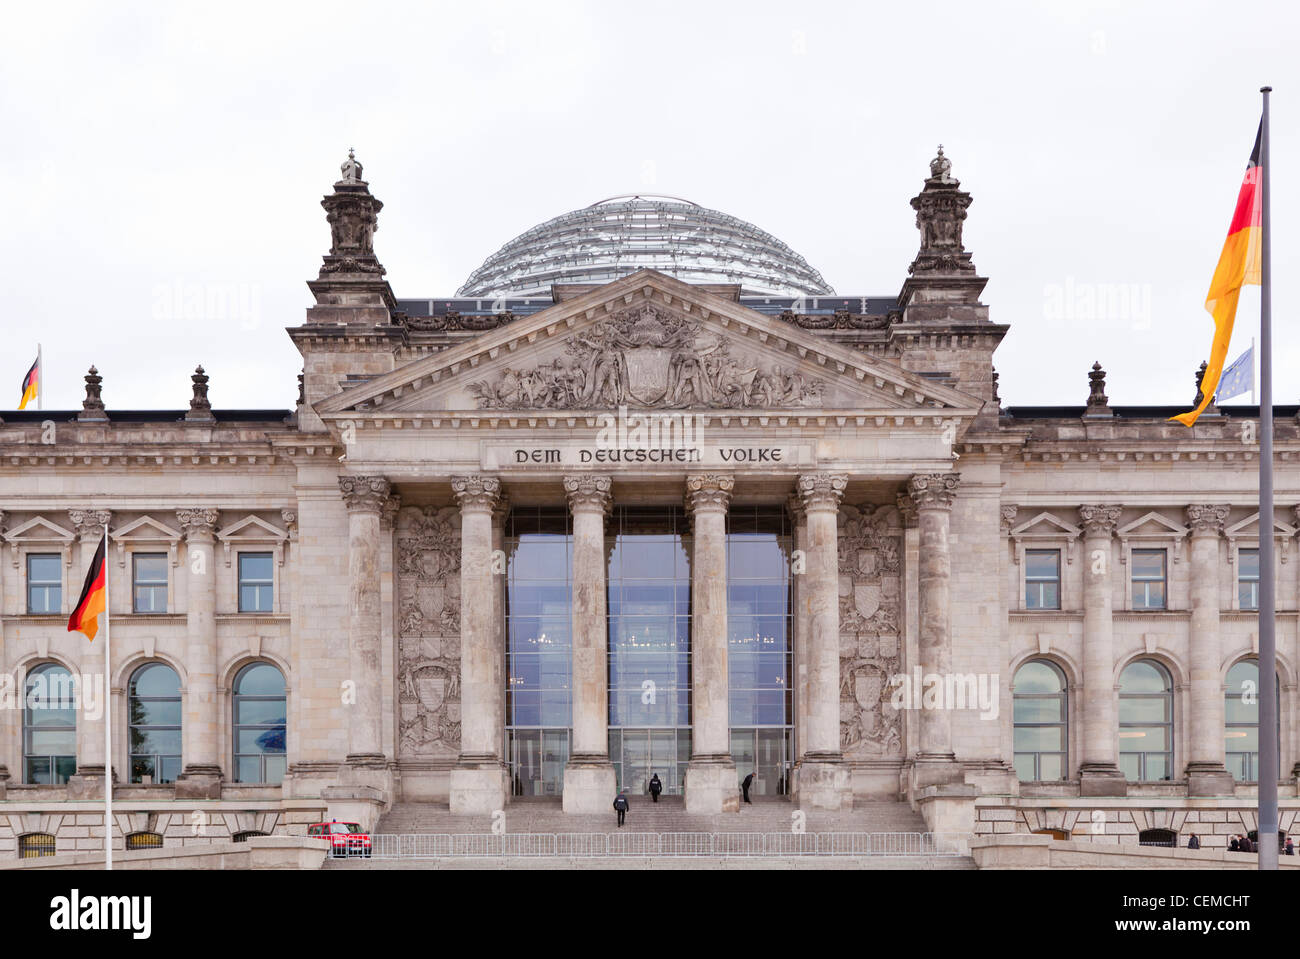 The Bundestag. The German Parliament and Government Building in Berlin. - Stock Image